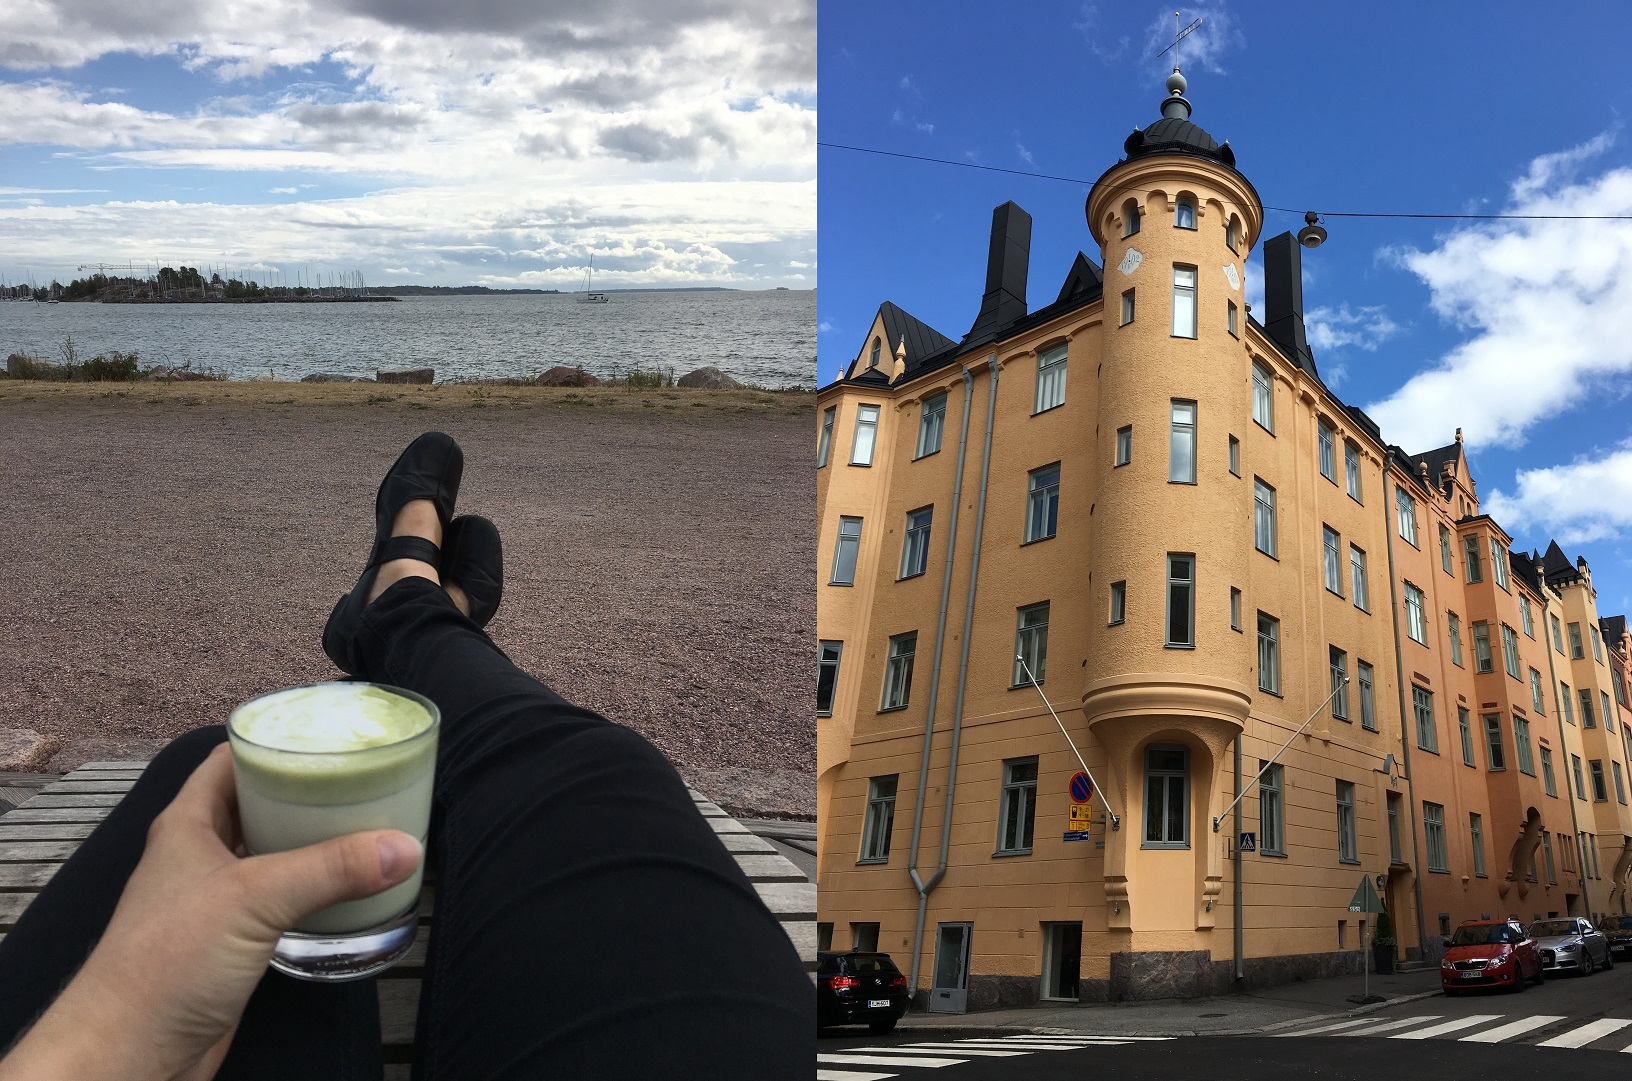 Cafe Birgitta, Hernesaari (links), Jugendstilarchitektur in Katajanokka (rechts)